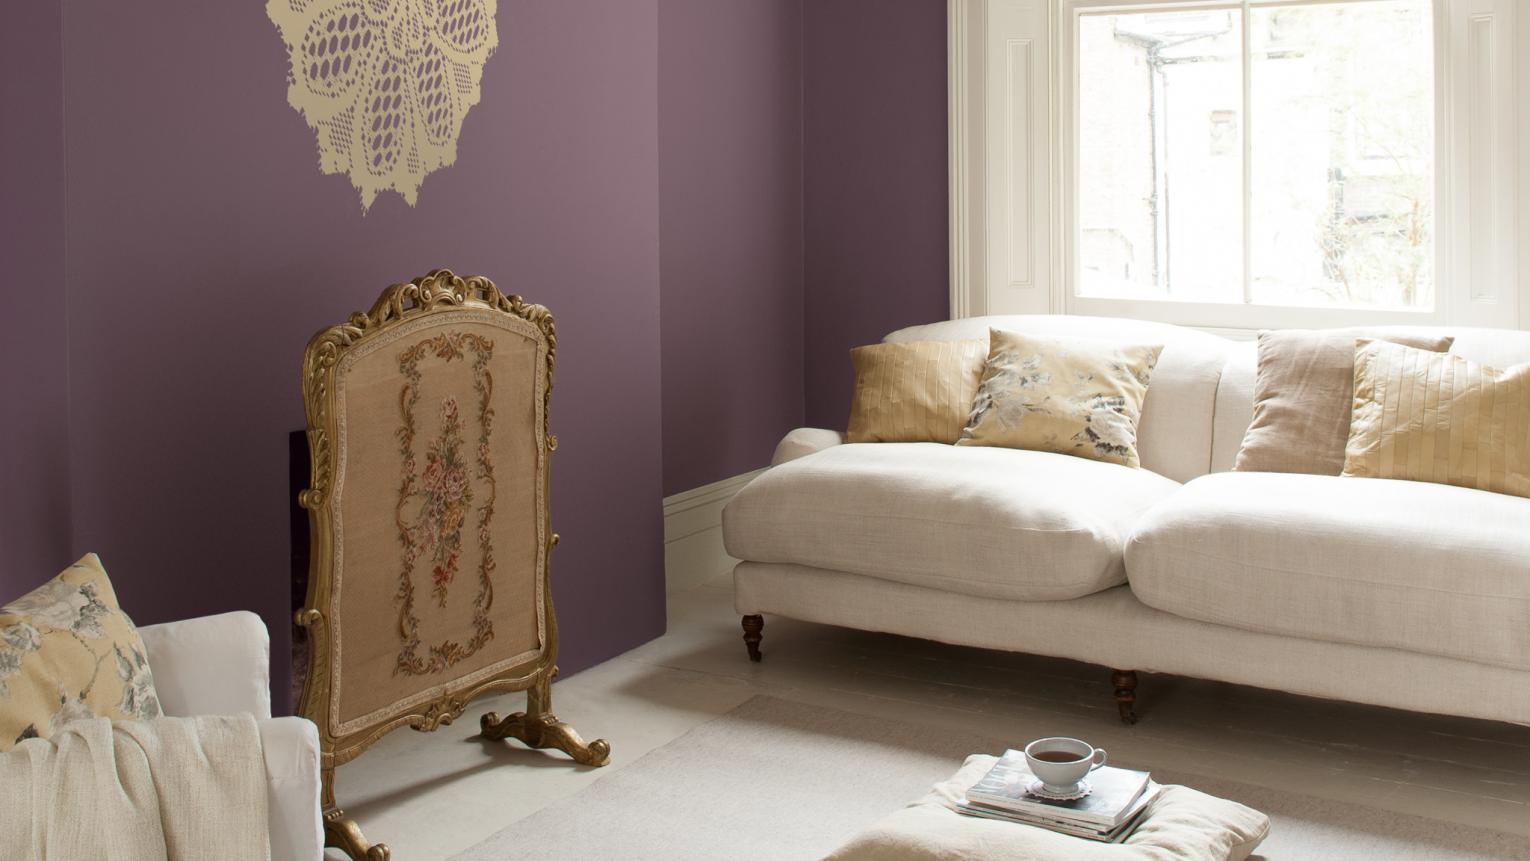 Violet and creamy whites create a dreamy, female mood.